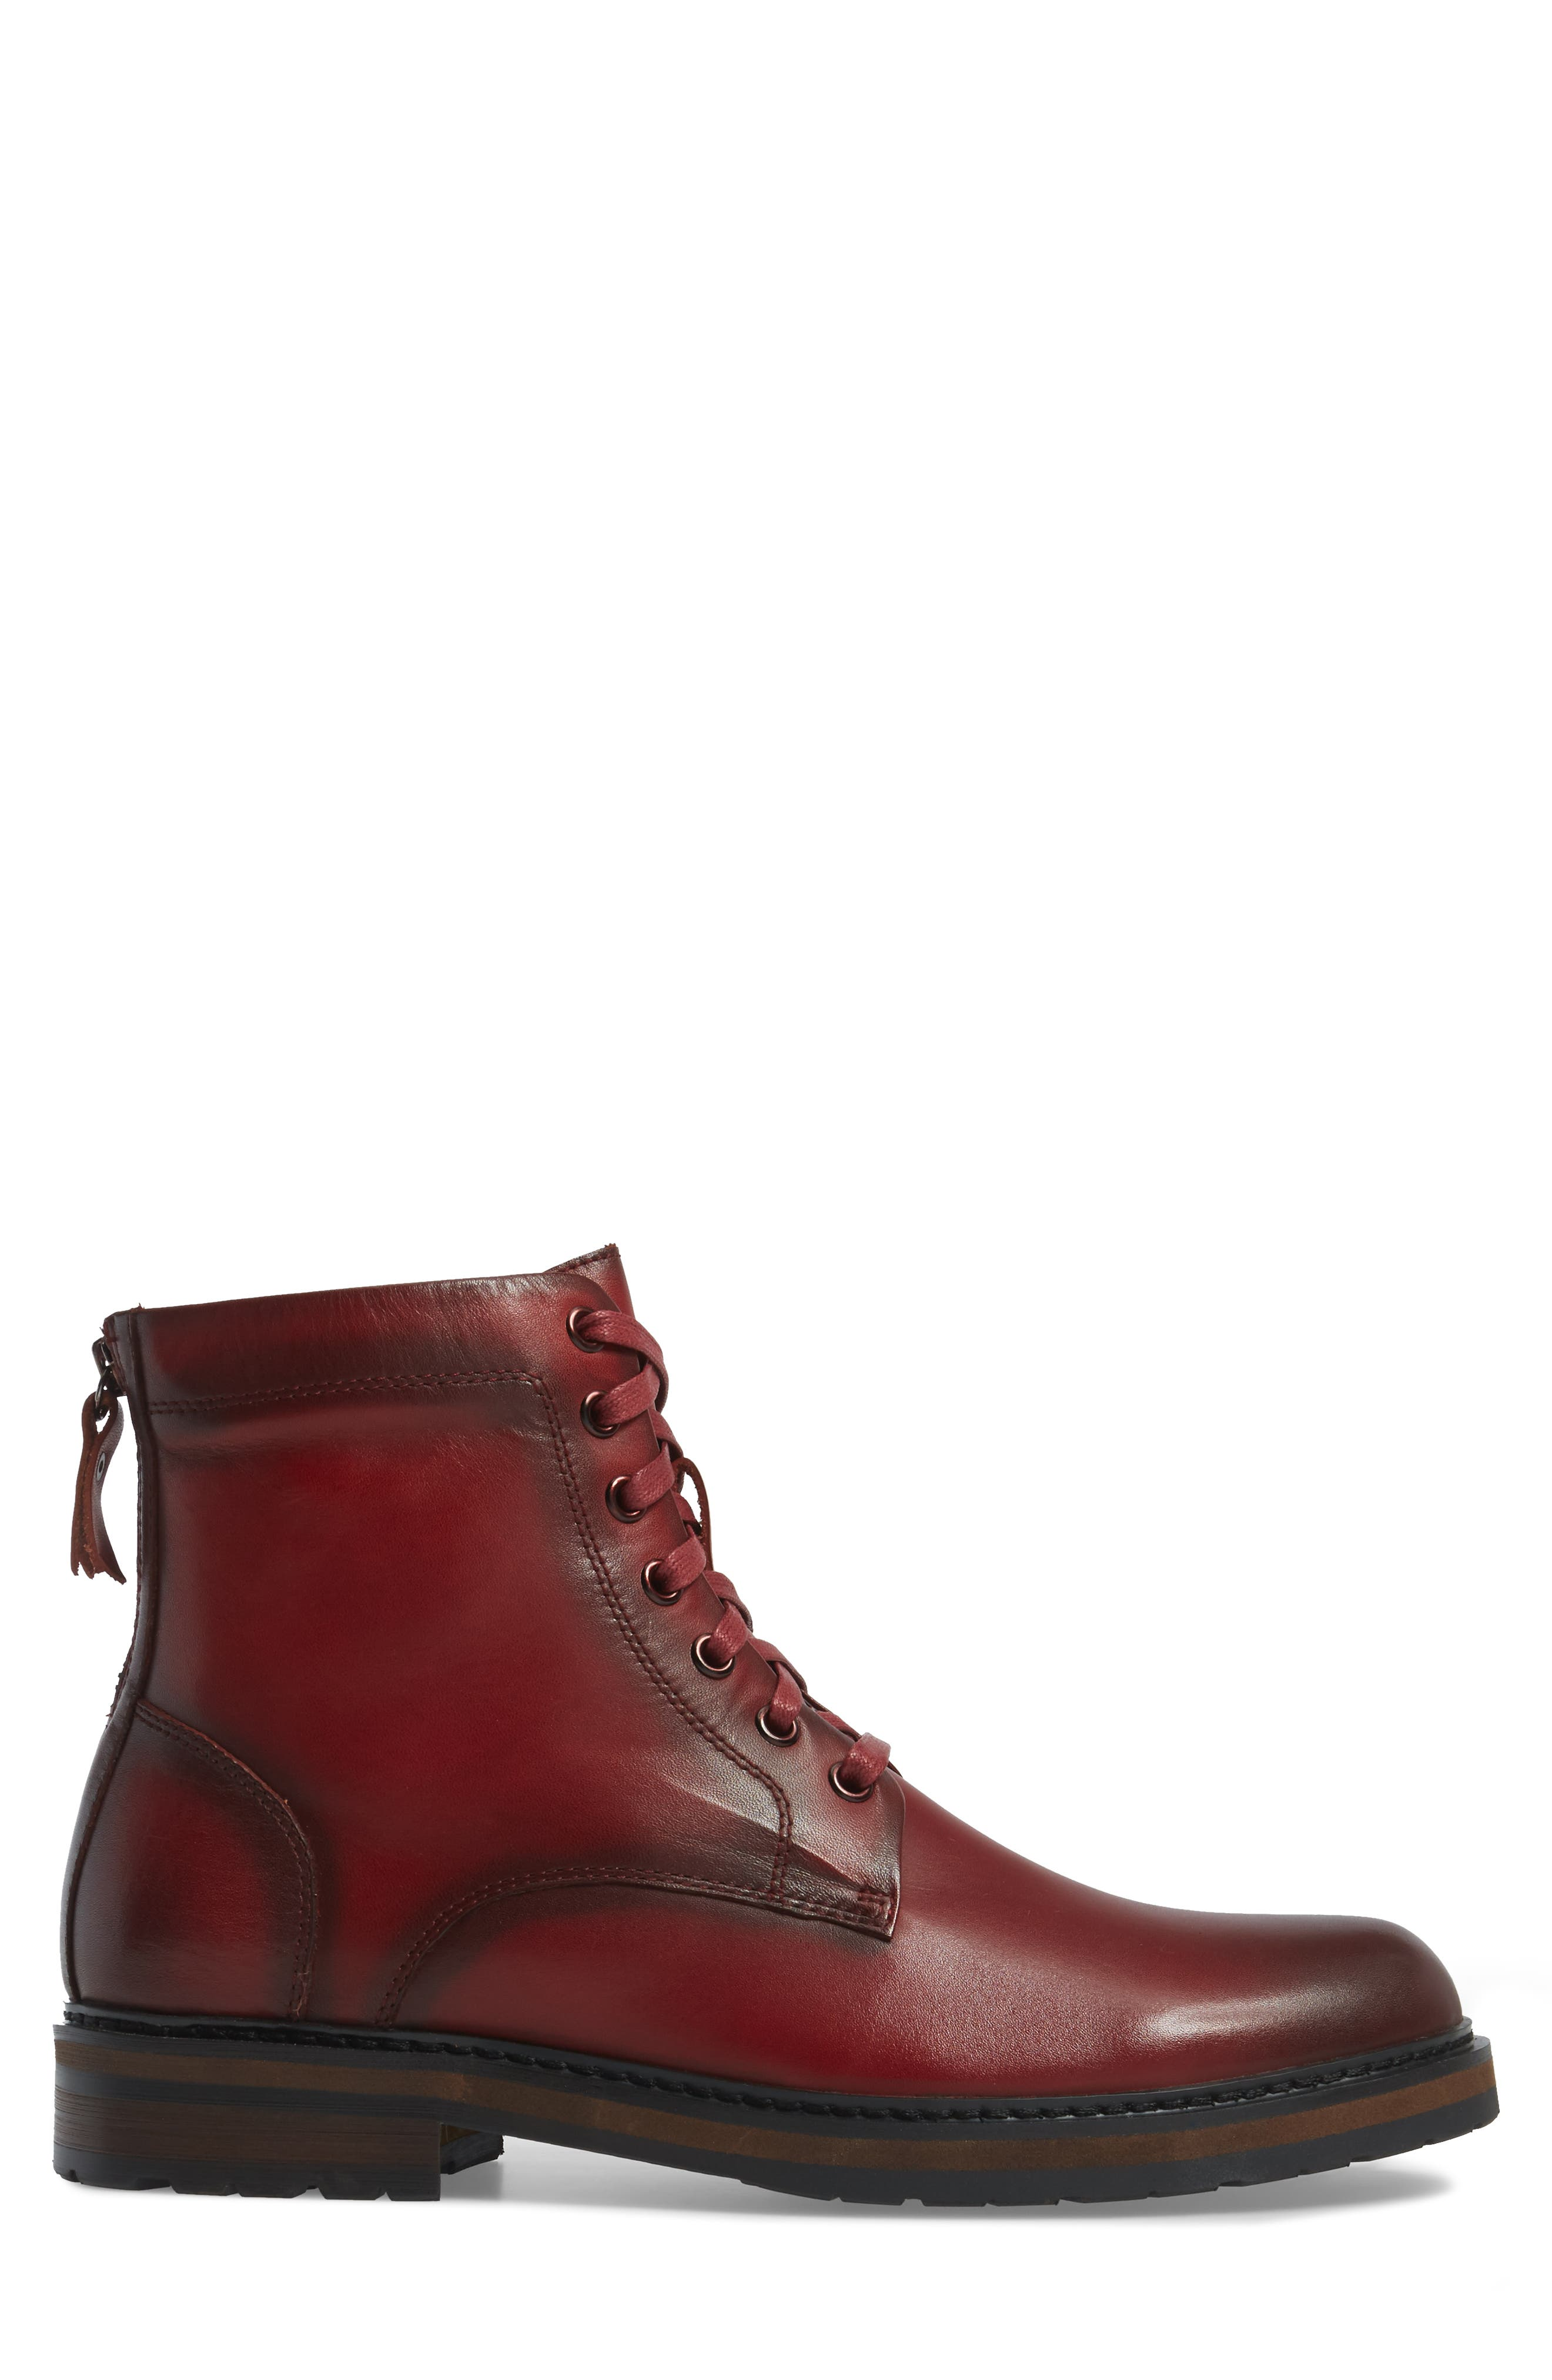 Miro Combat Boot,                             Alternate thumbnail 3, color,                             Wine Leather